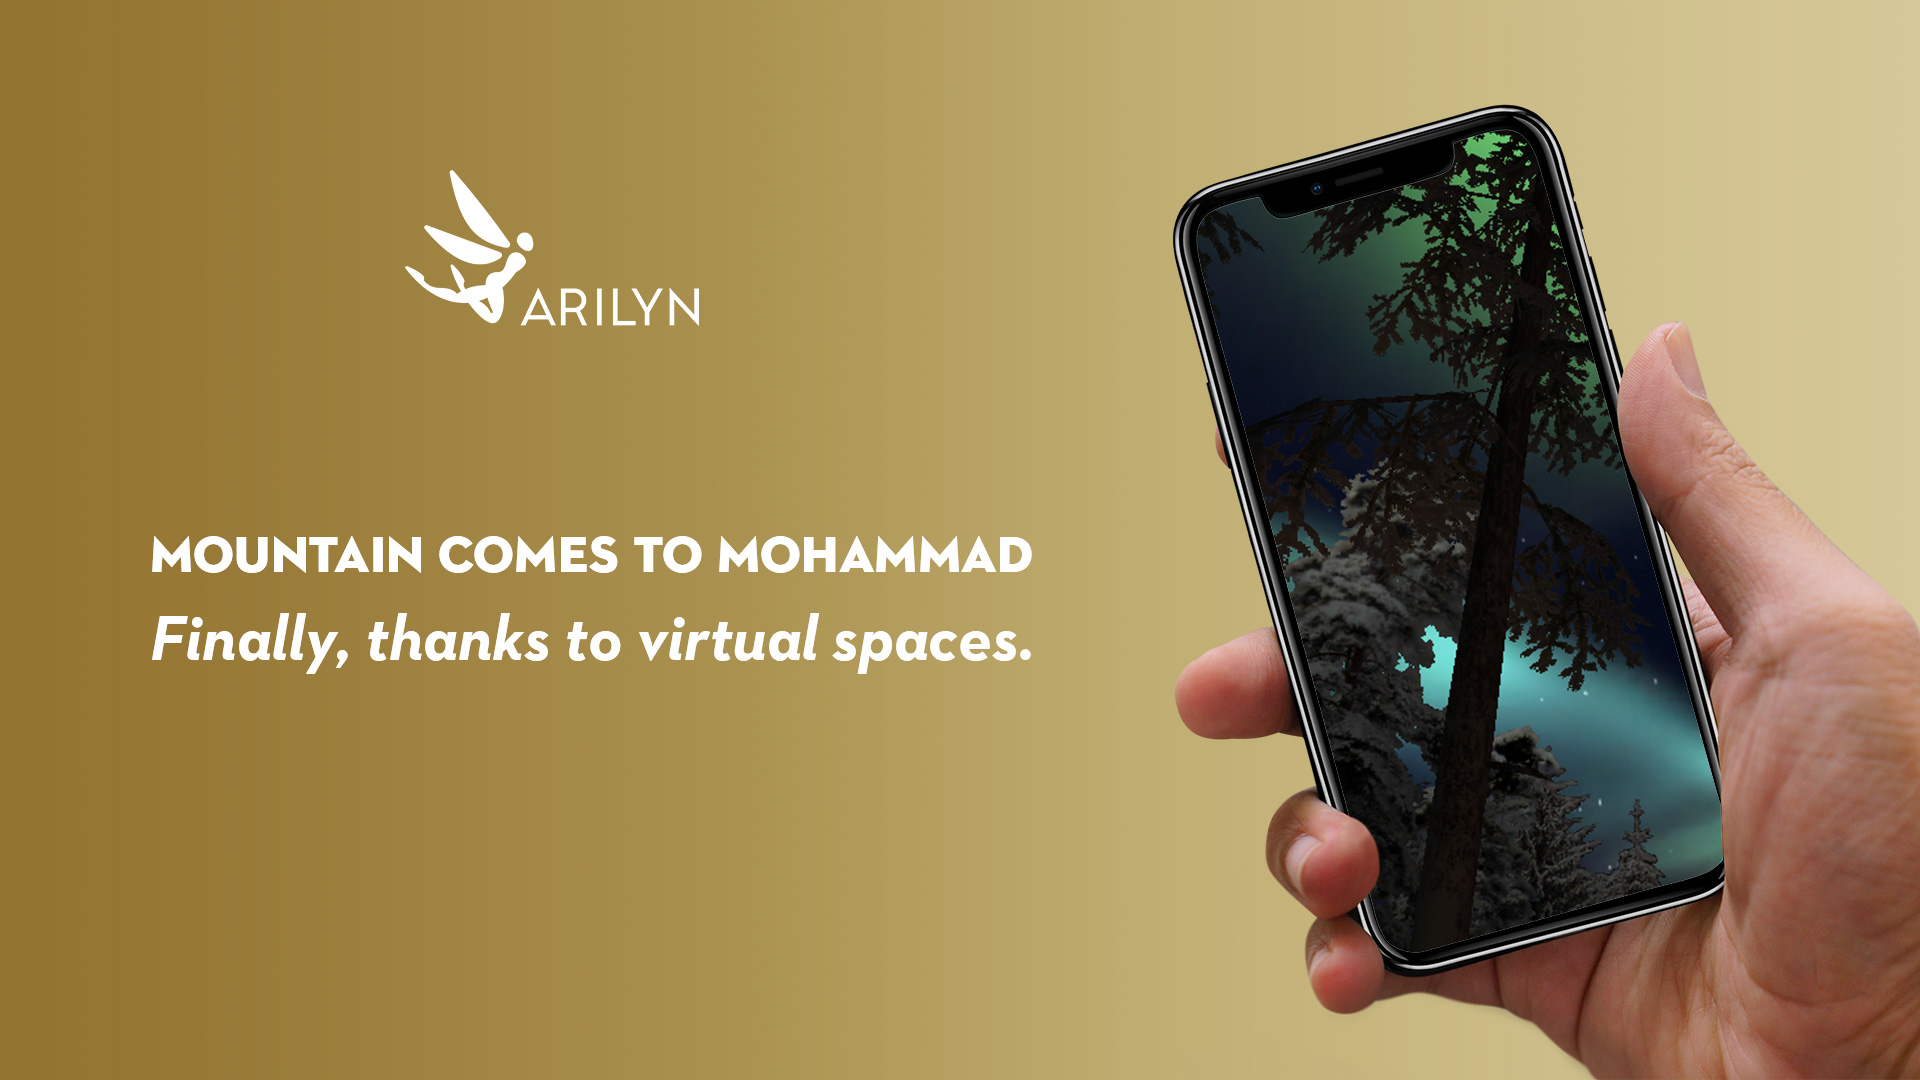 The mountain can finally come to Mohammad, thanks to virtual spaces